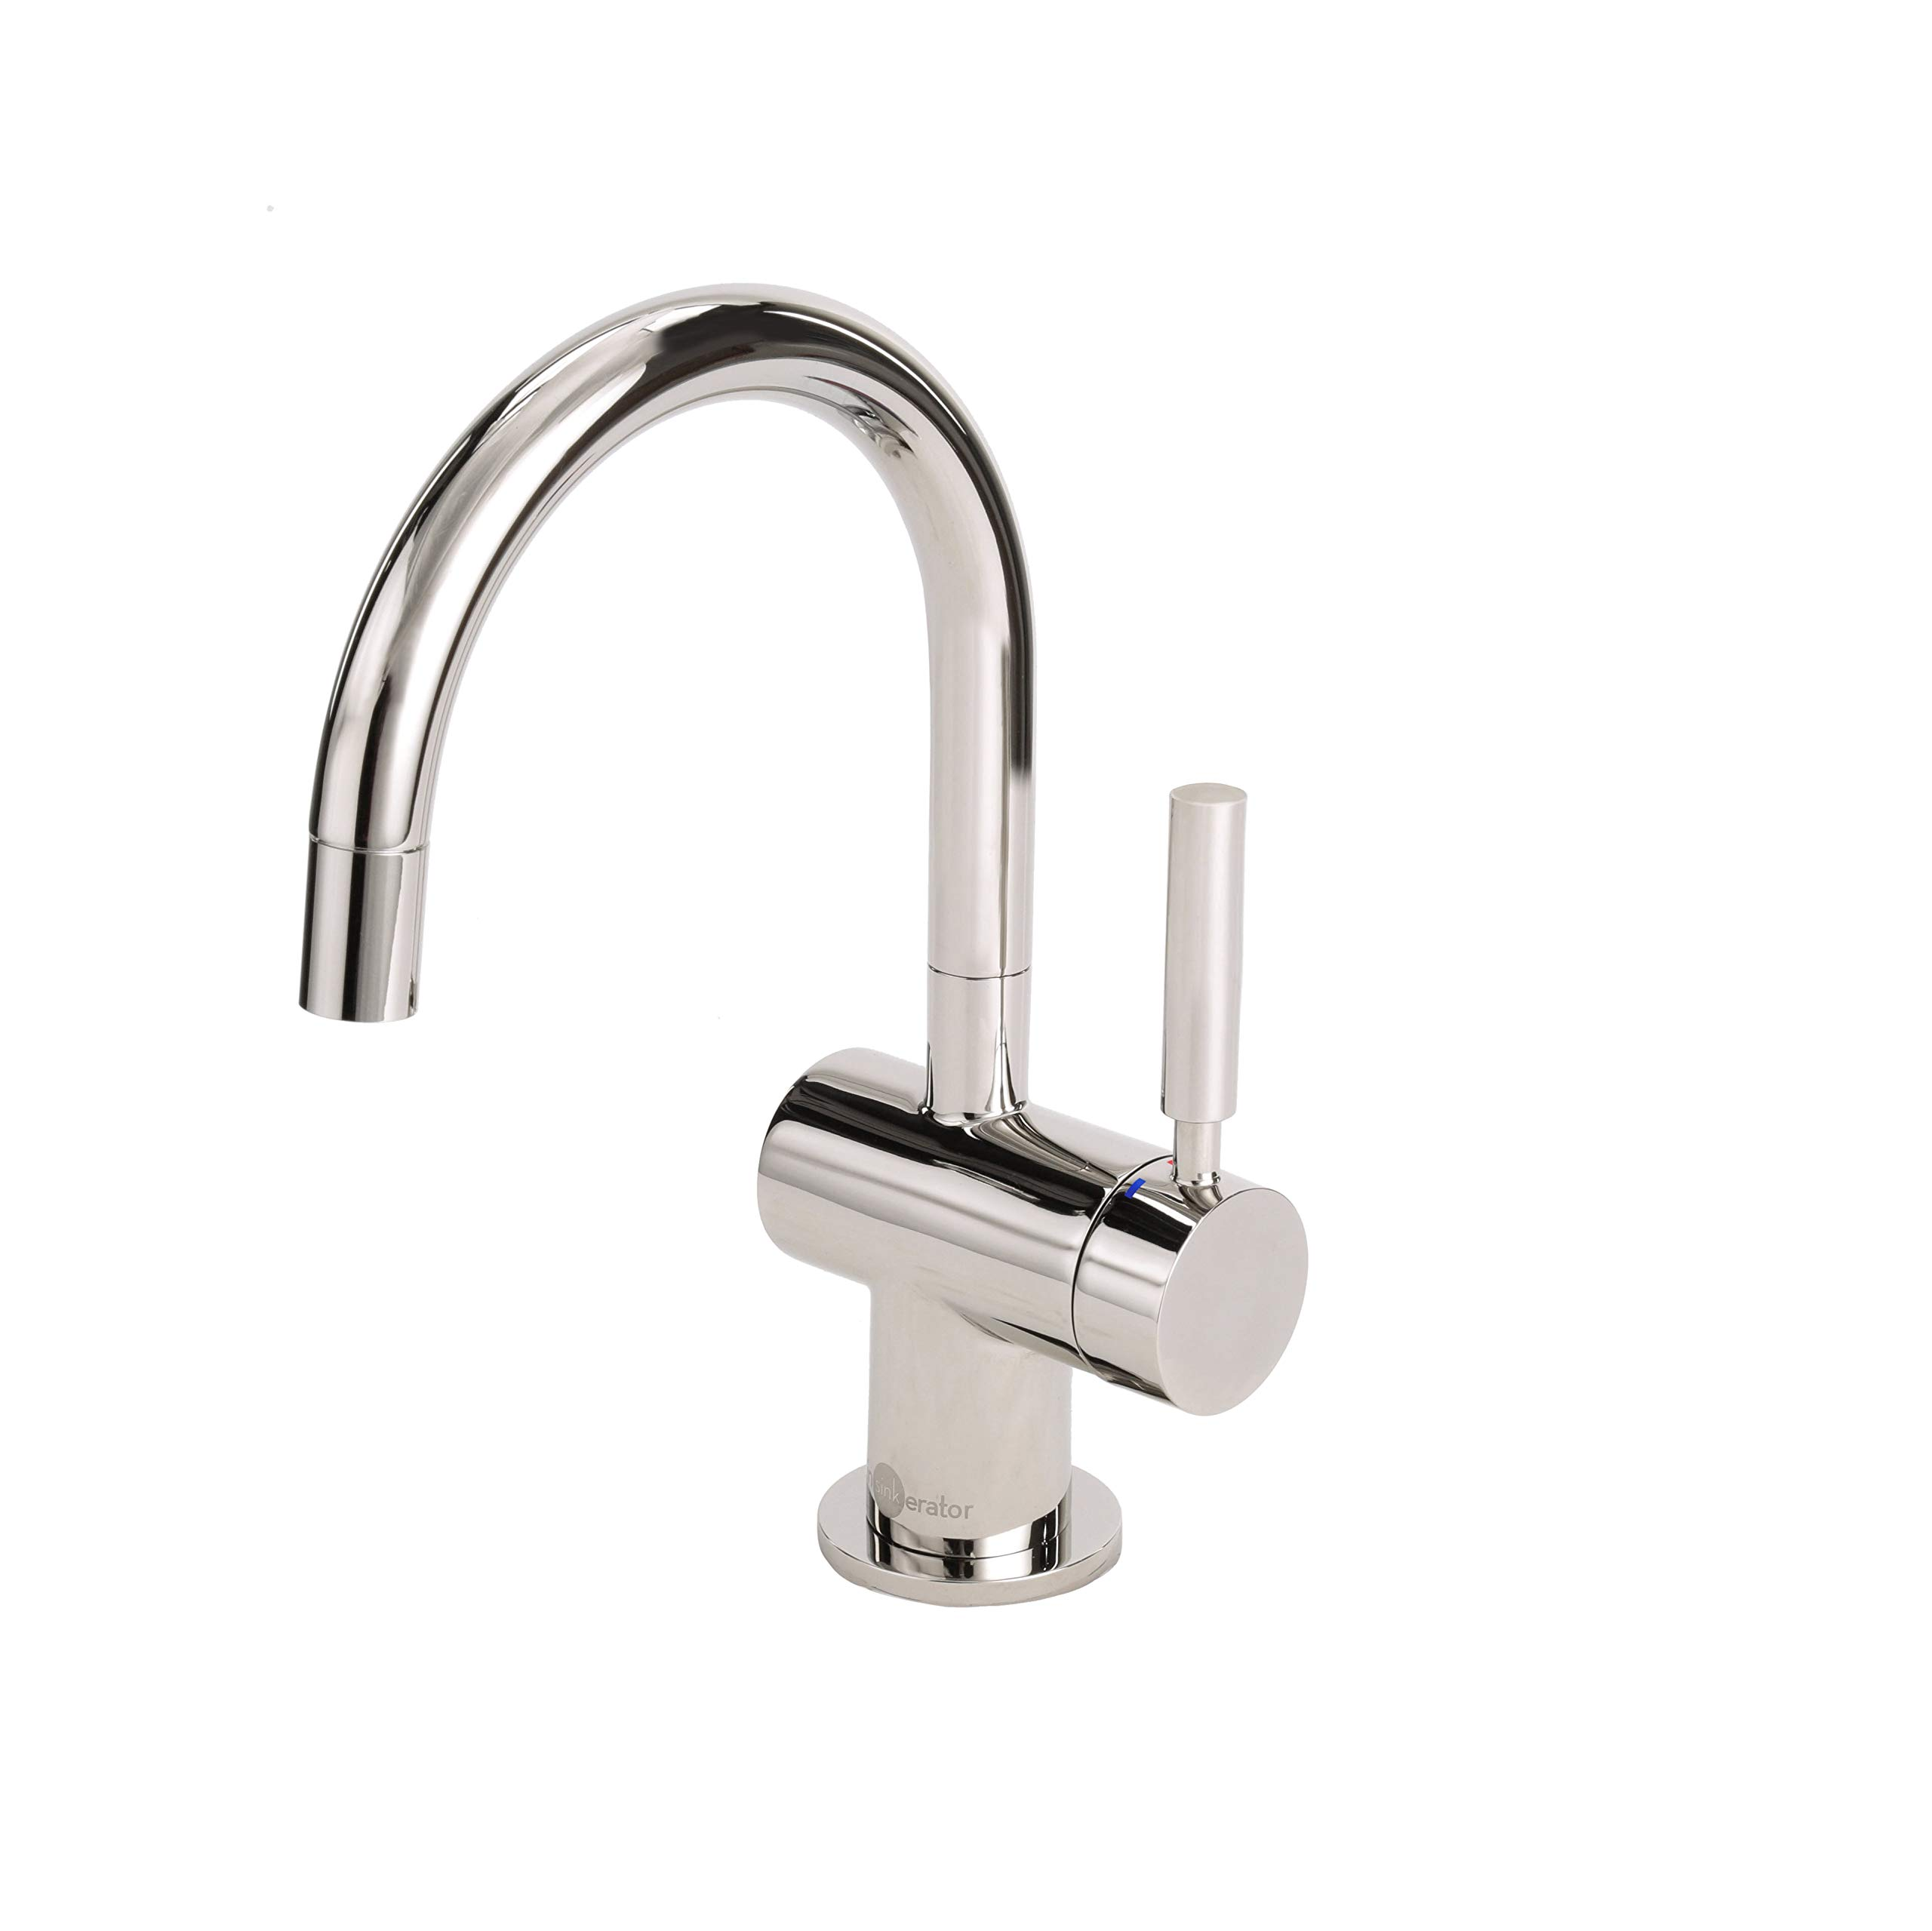 InSinkErator F-HC3300PN Indulge Modern Hot and Cool Water Dispenser Faucet, Polished Nickel